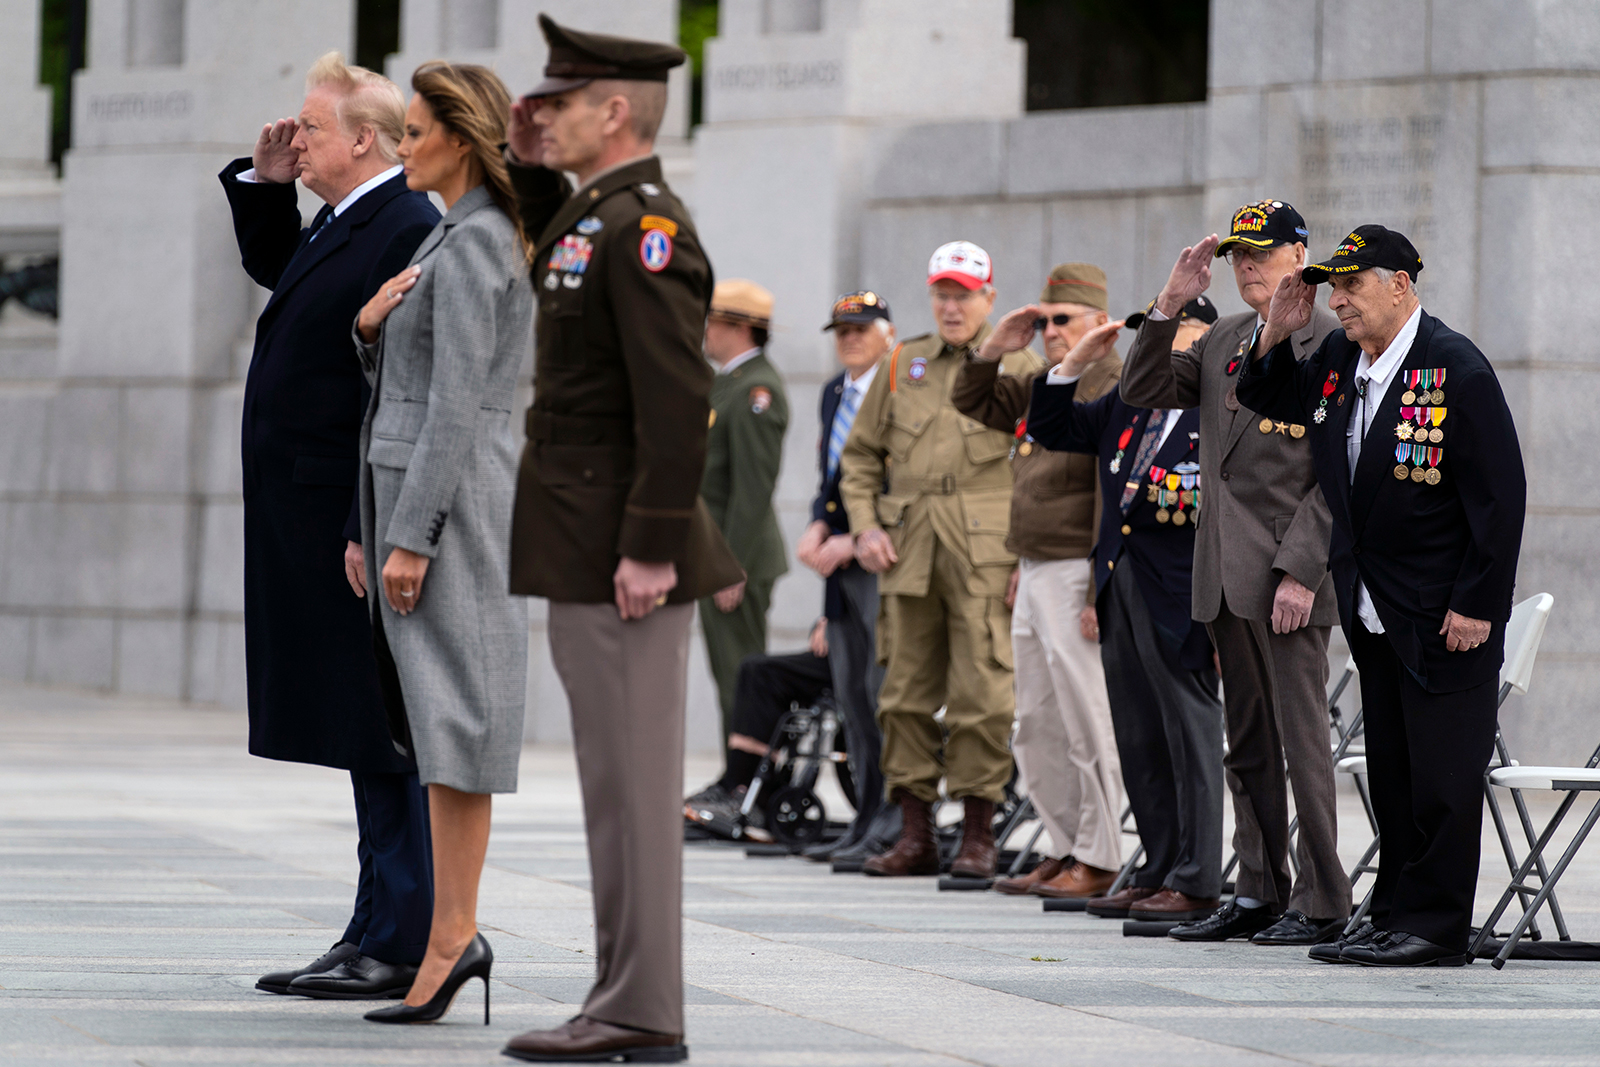 World War II veterans salute as Taps is played during a ceremony at the World War II Memorial to commemorate the 75th anniversary of Victory in Europe Day with President Donald Trump and first lady Melania Trump, on May 8, in Washington DC.